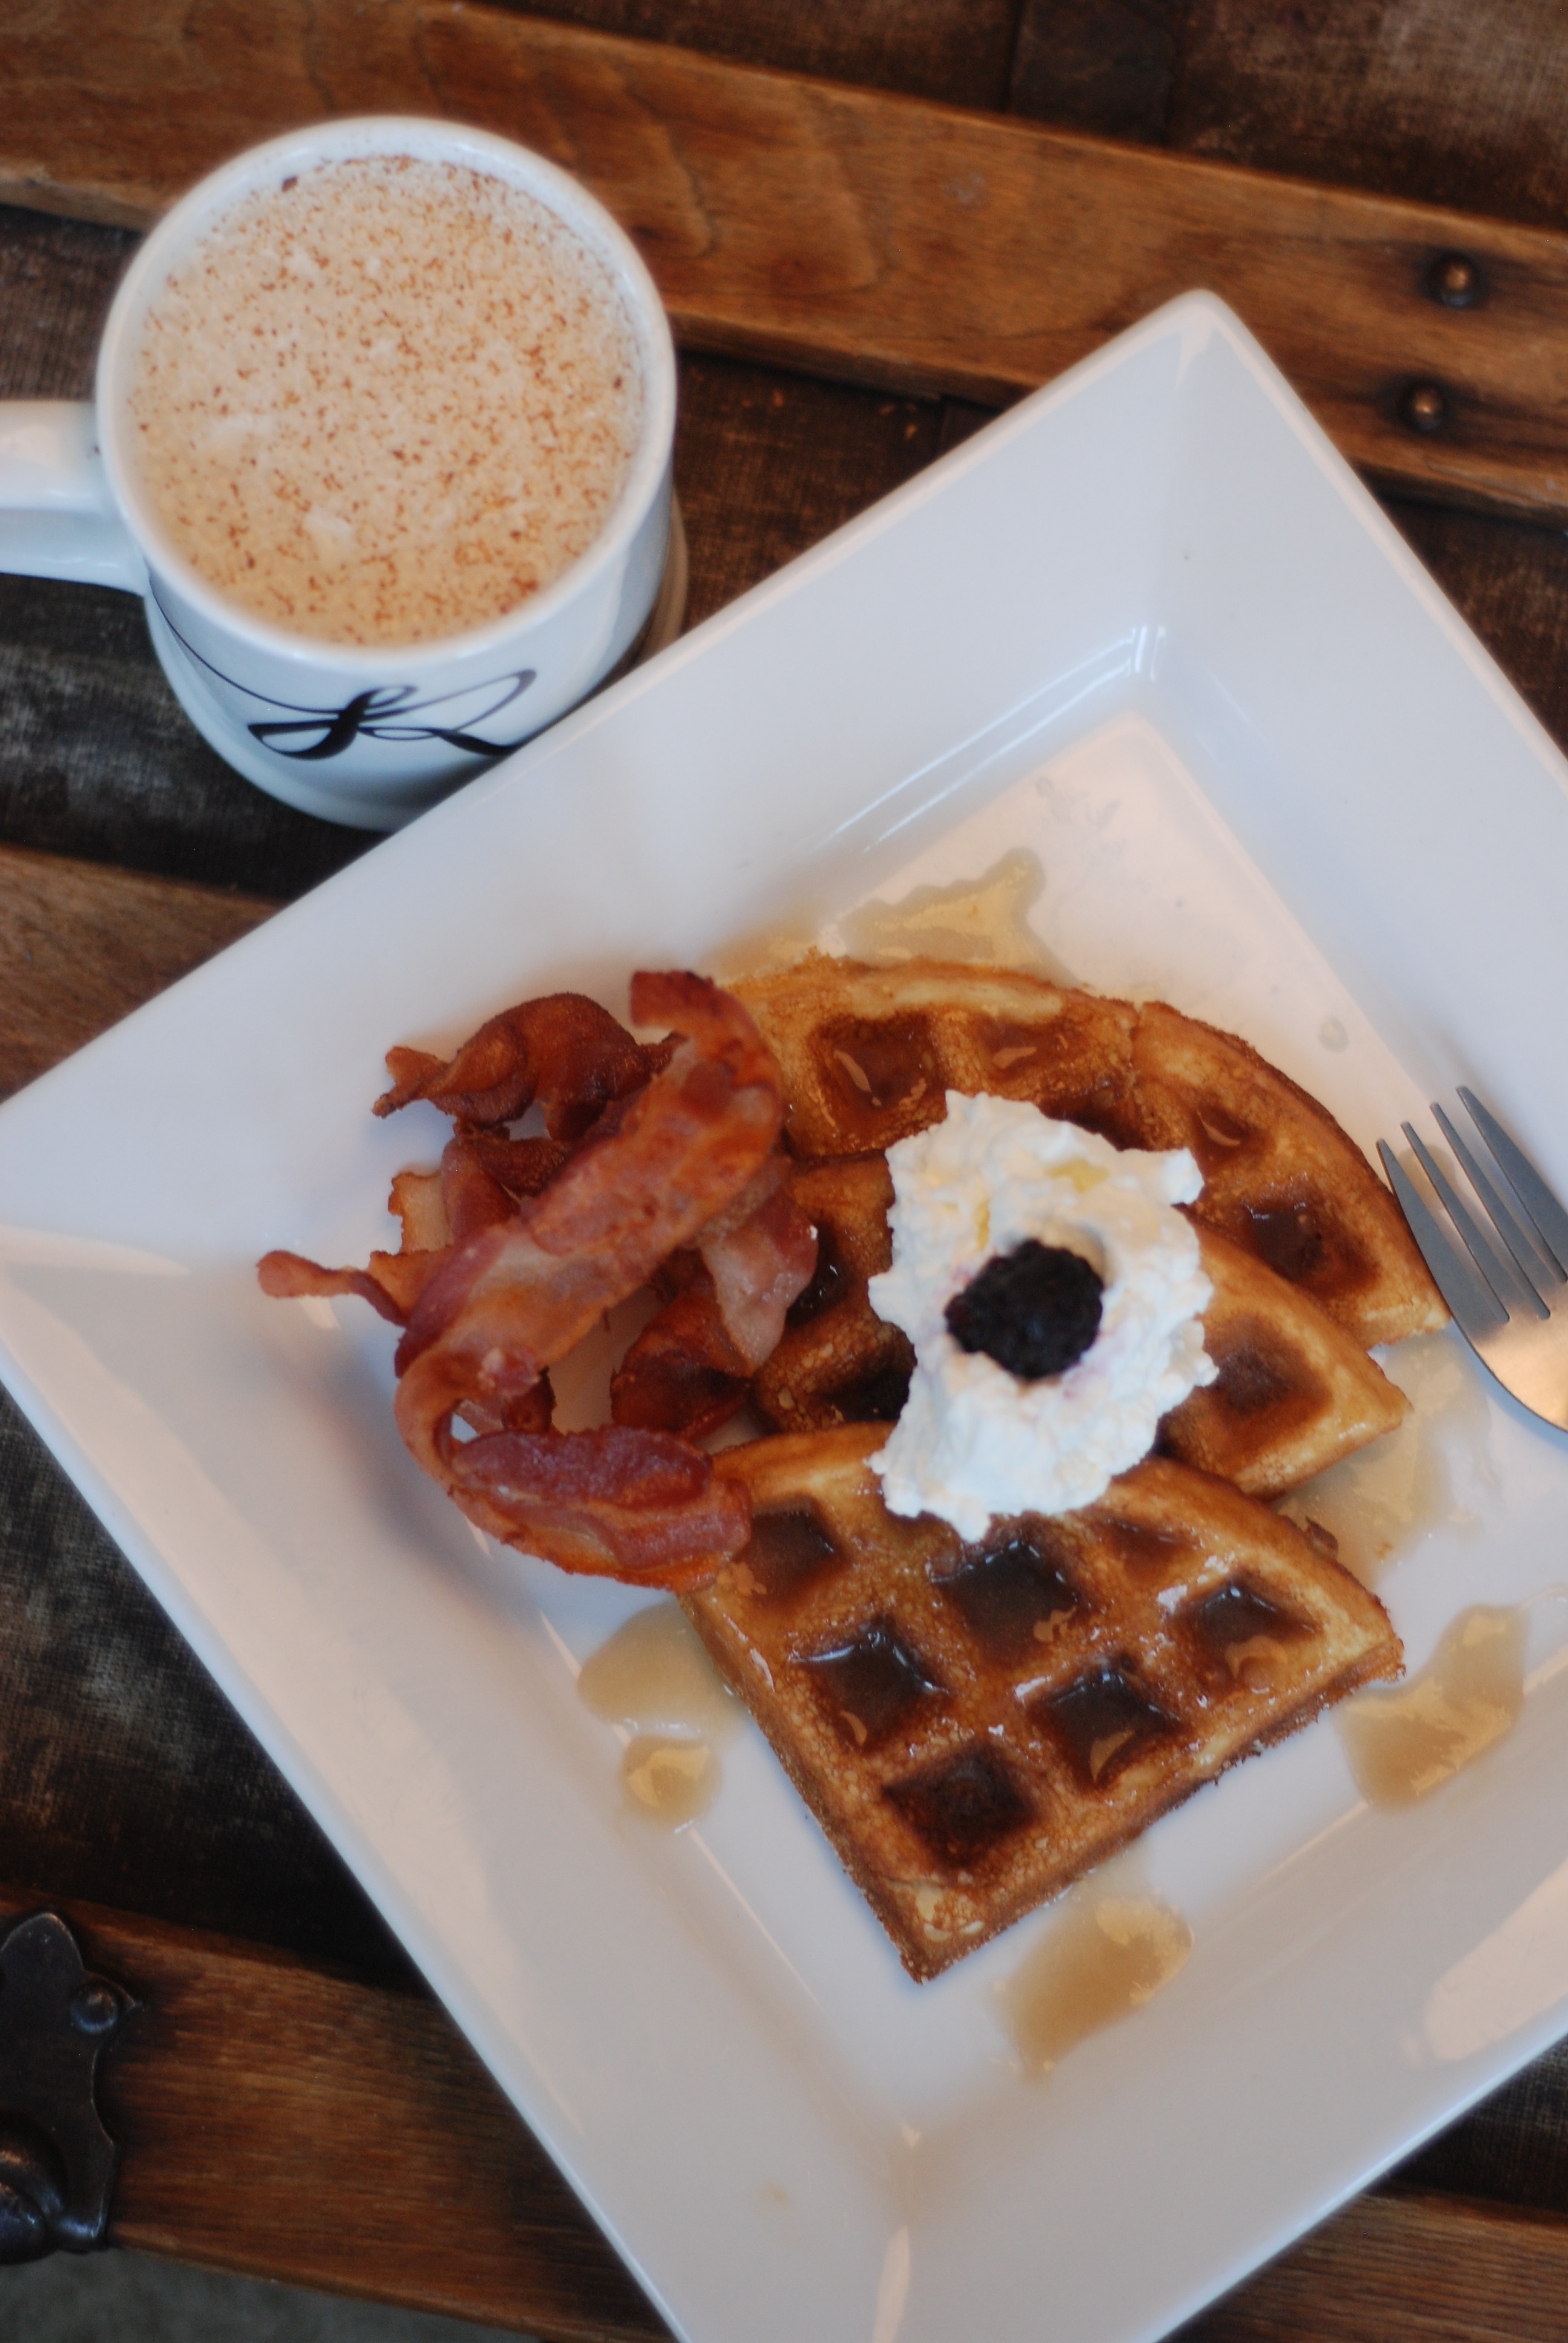 Coconut Flour Keto Waffles from Nutmeg Disrupted